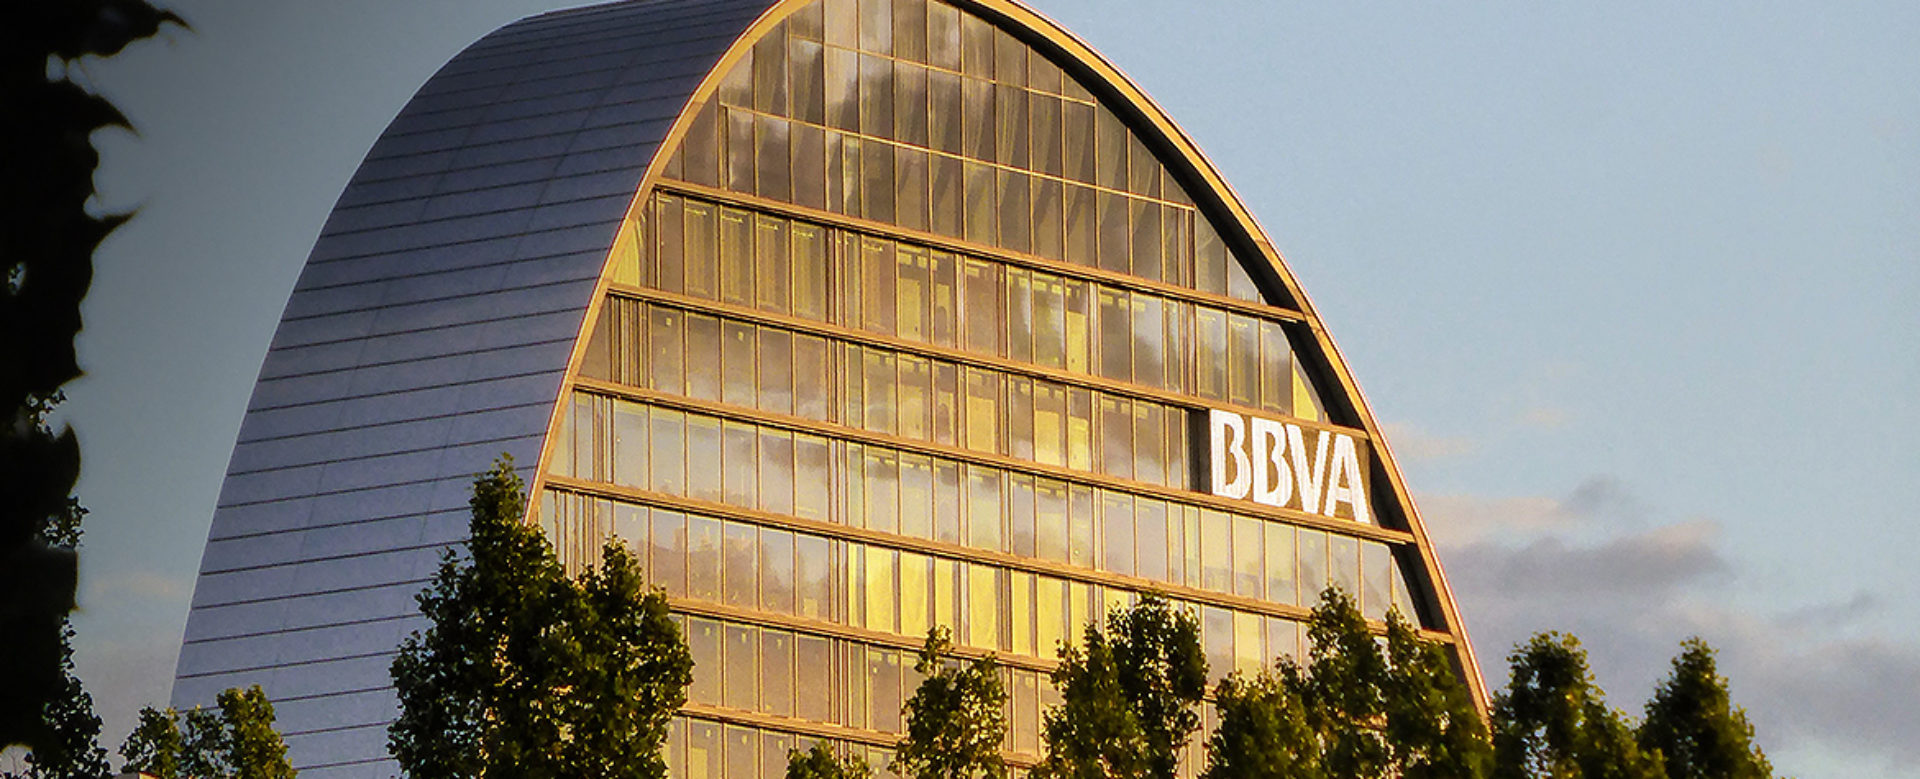 Prevention of corruption at BBVA